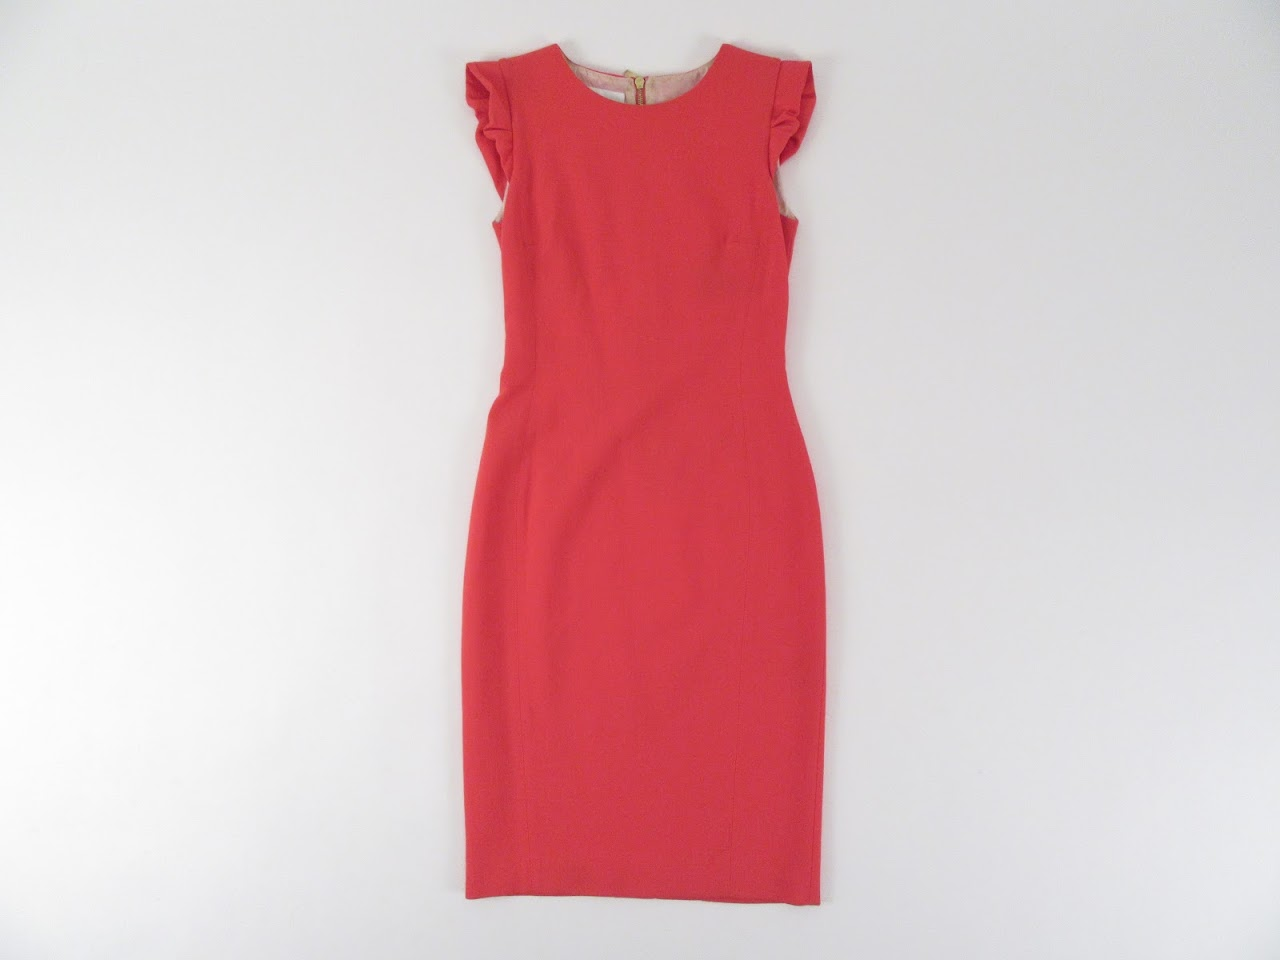 Emilio Pucci Salmon Sheath Dress